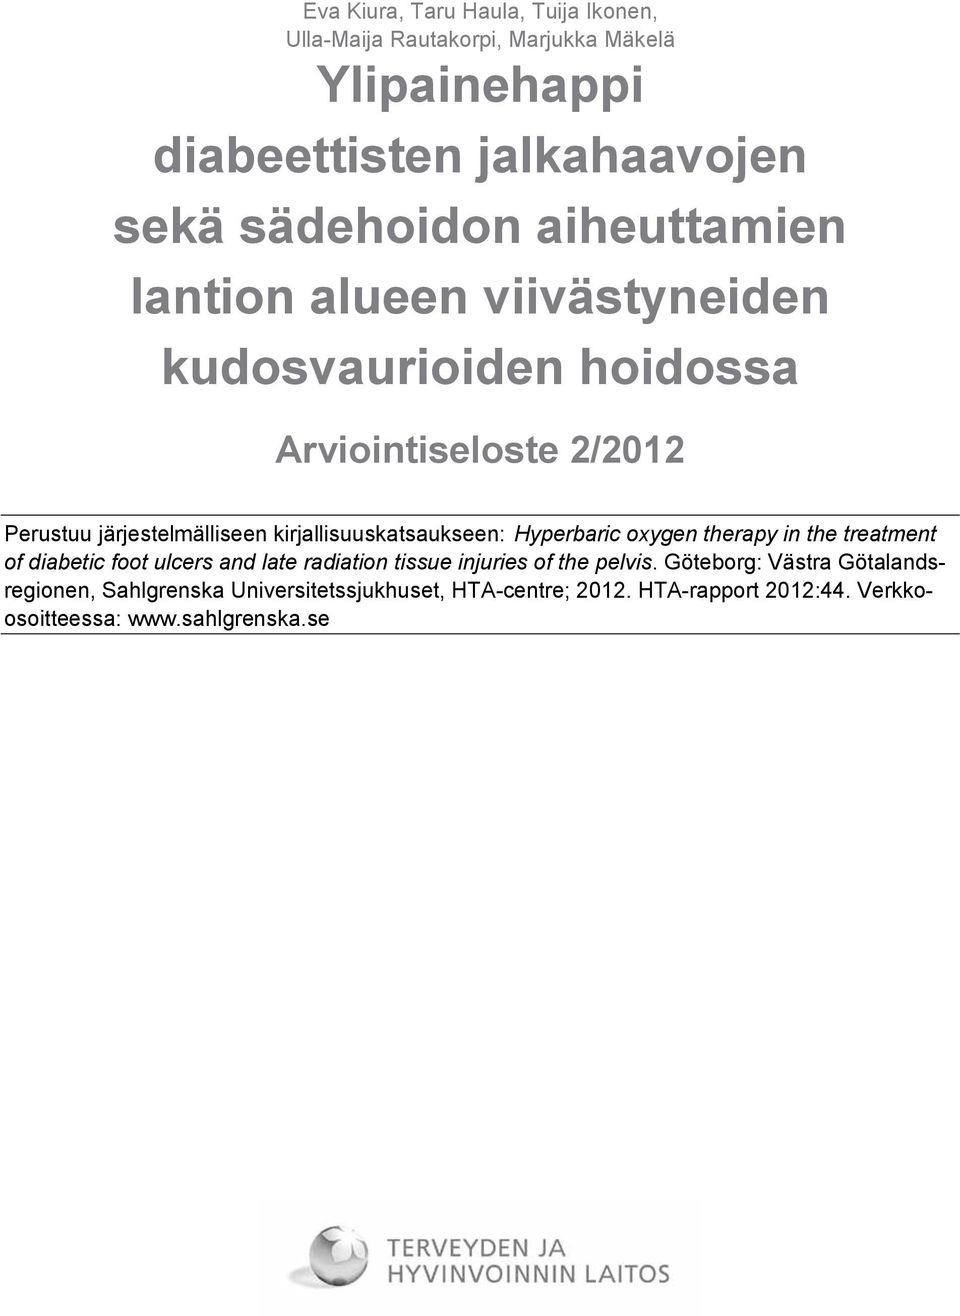 kirjallisuuskatsaukseen: Hyperbaric oxygen therapy in the treatment of diabetic foot ulcers and late radiation tissue injuries of the